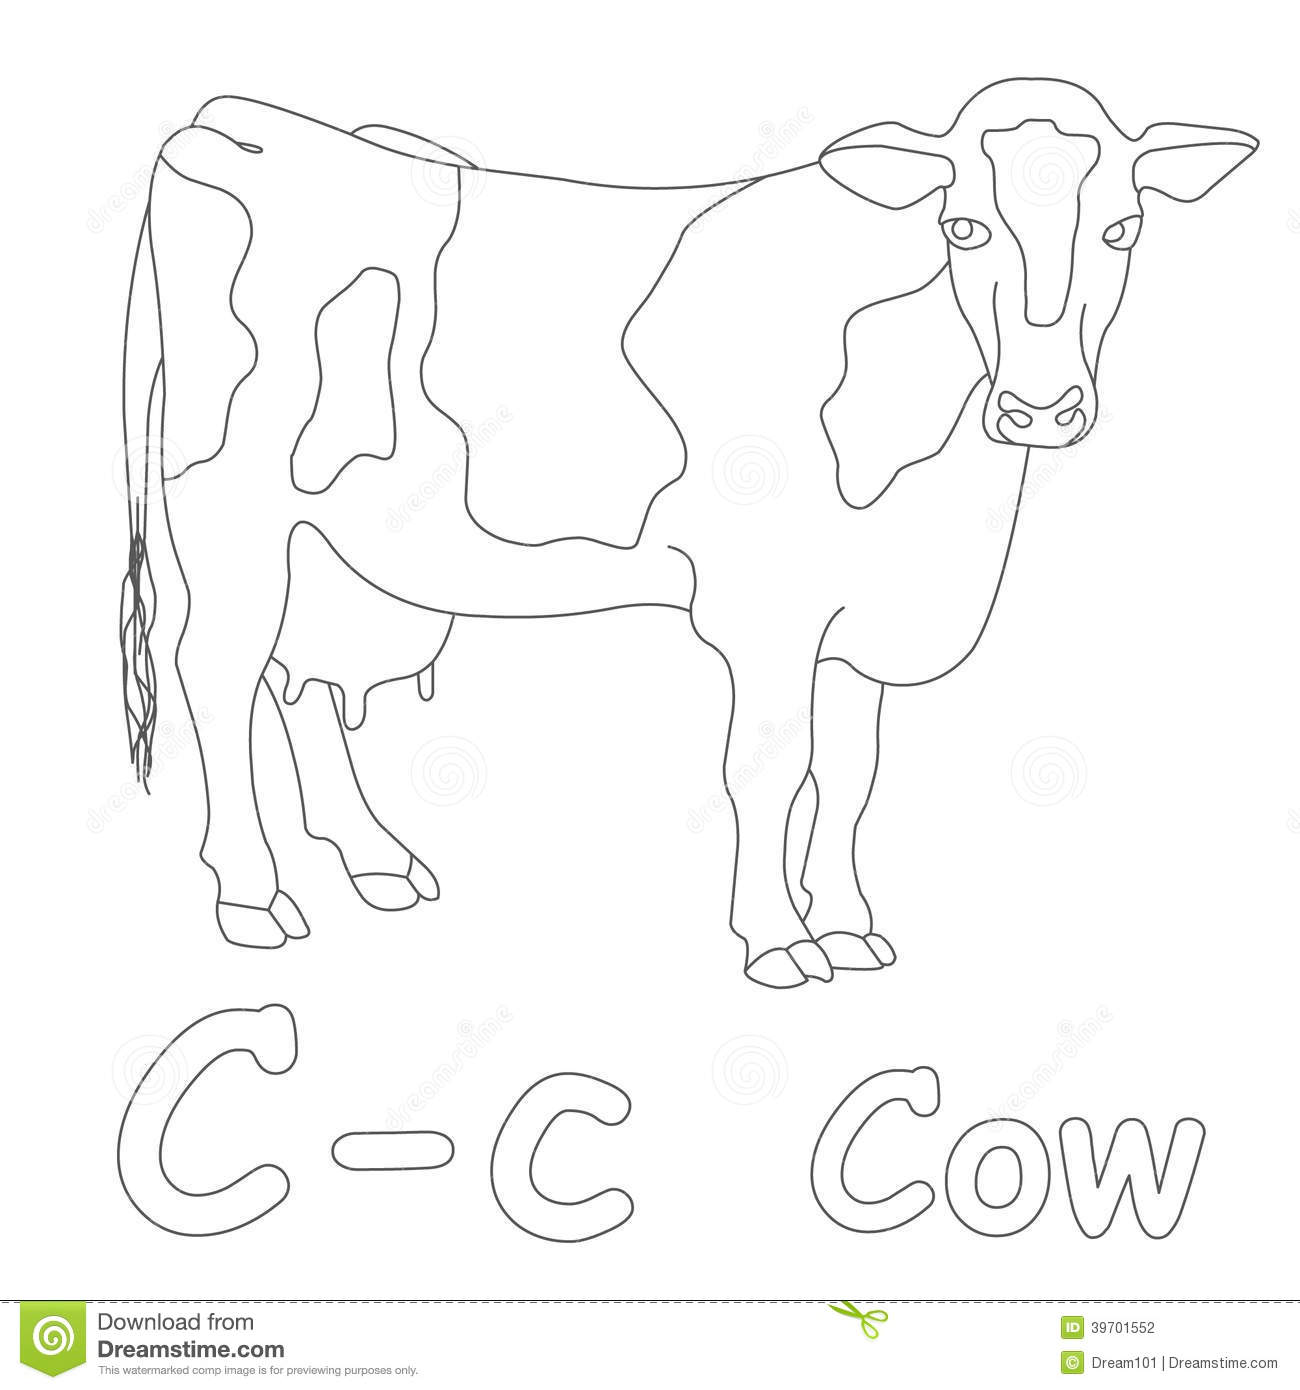 c for cow coloring page stock illustration image 39701552